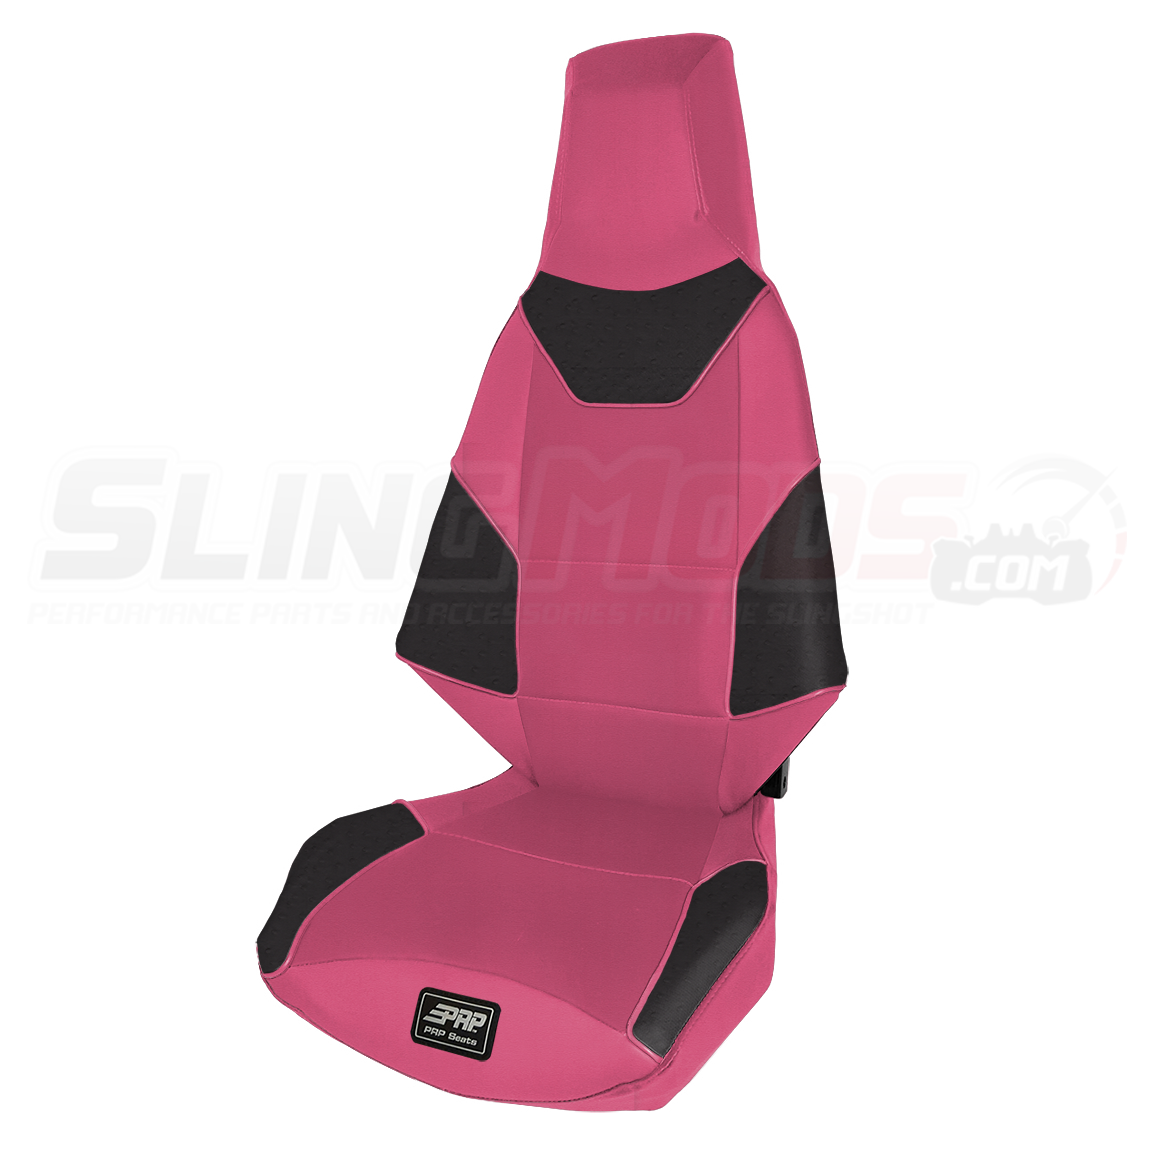 PRP Customizable Seat Covers for the Polaris Slingshot (Pair